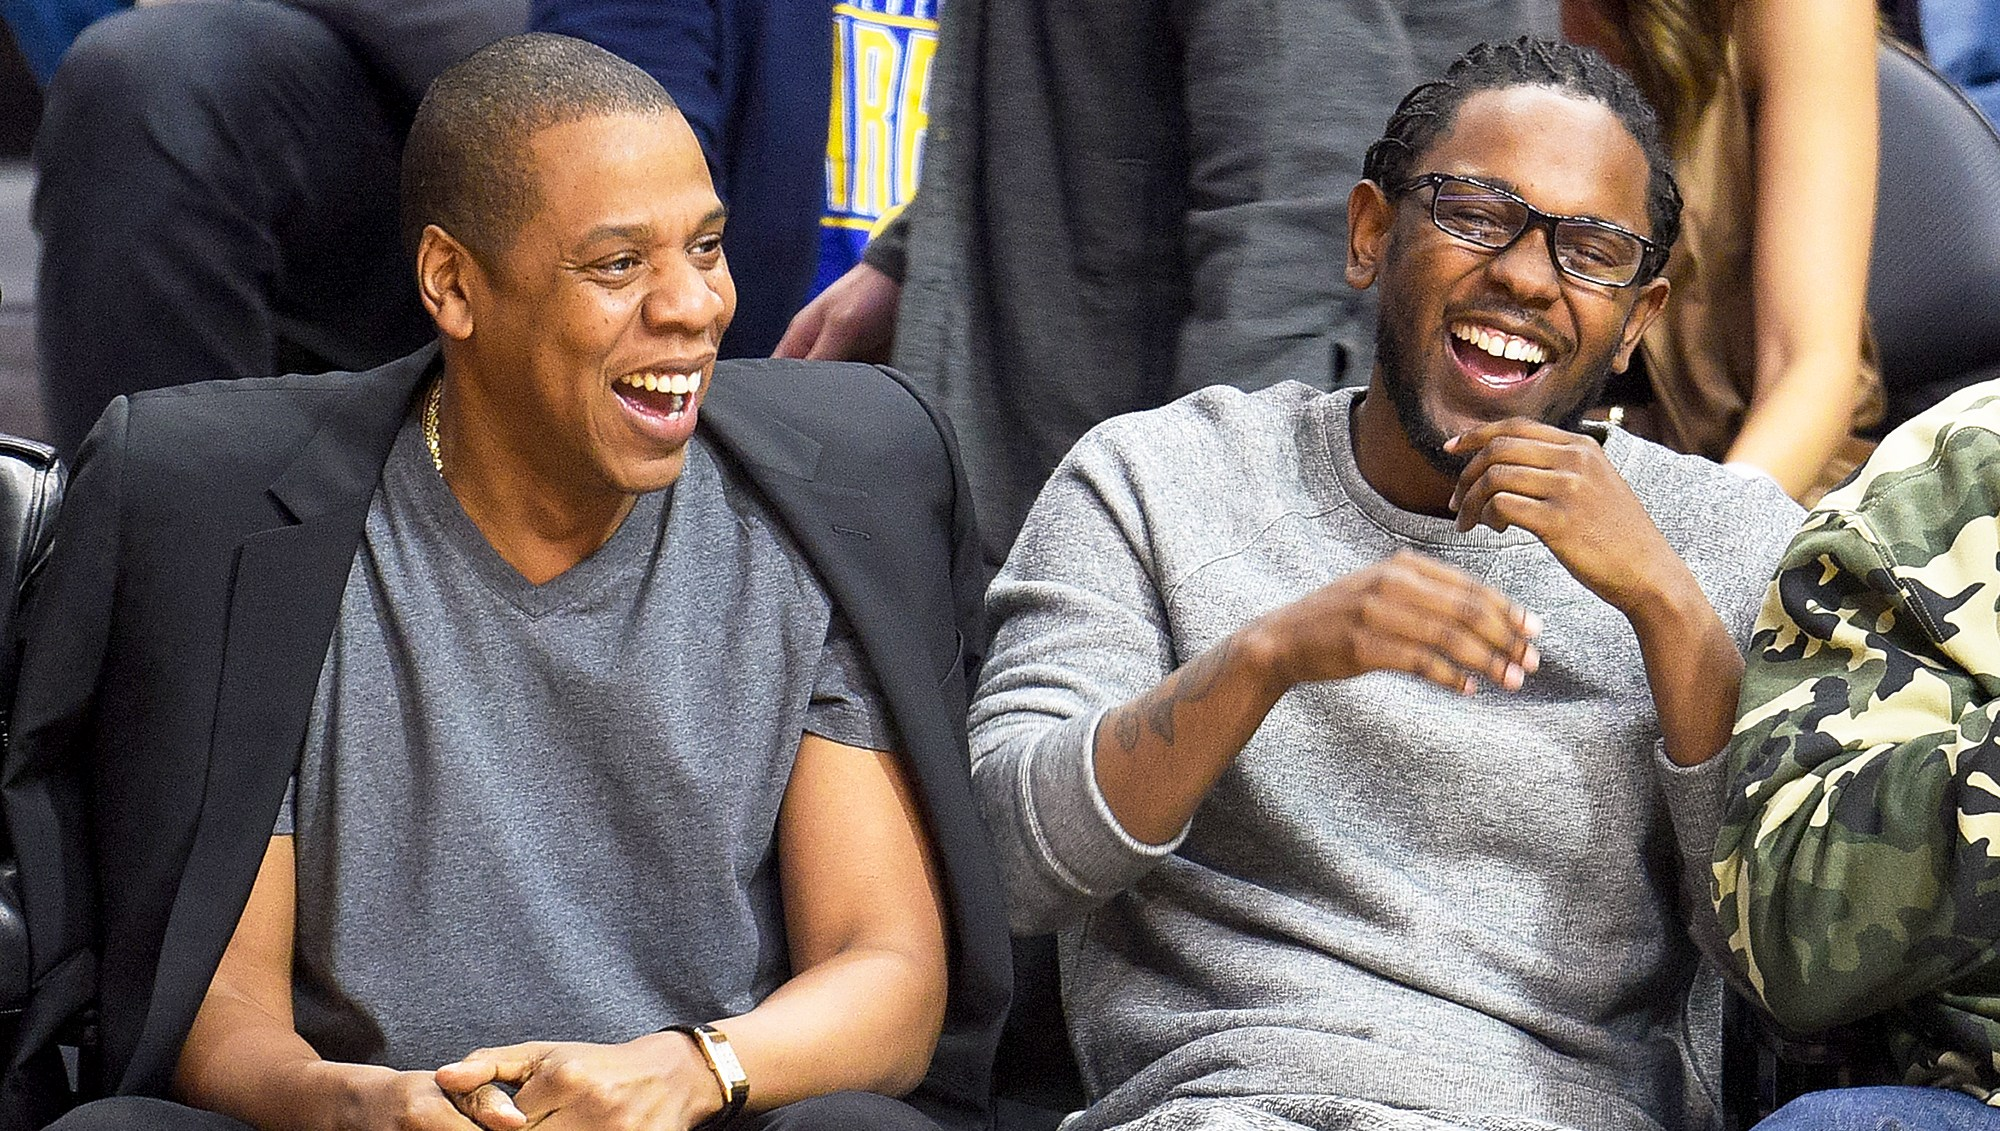 Jay Z and Kendrick Lamar attend a basketball game between the Golden State Warriors and the Los Angeles Clippers at Staples Center on February 20, 2016 in Los Angeles, California.